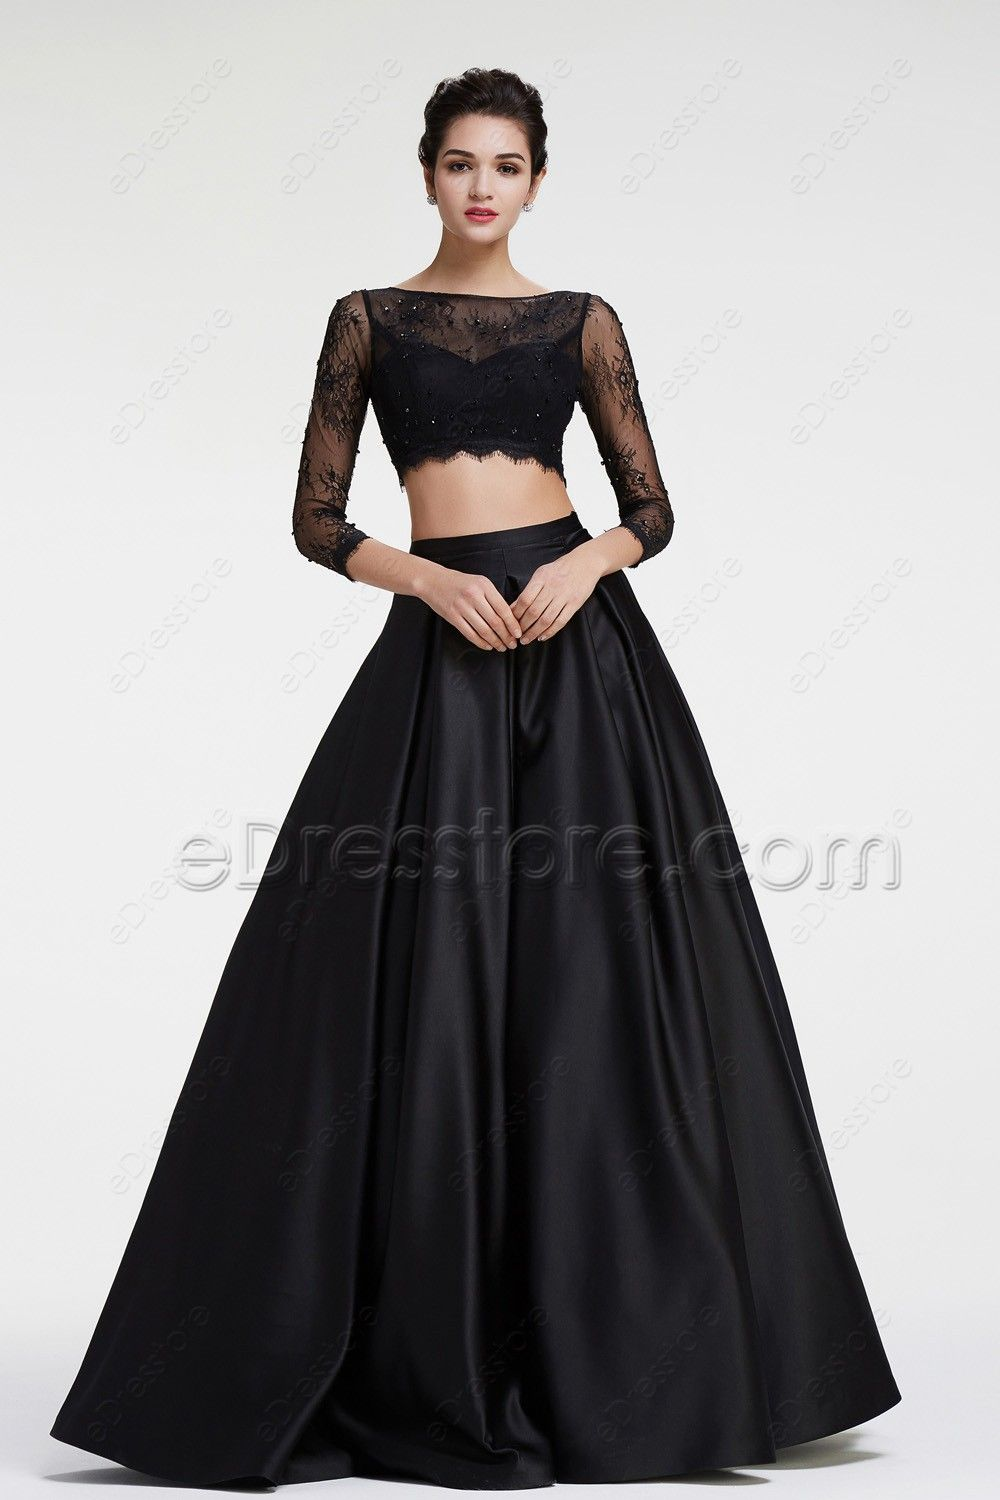 Black lace two pieces prom dresses long sleeves black laces prom